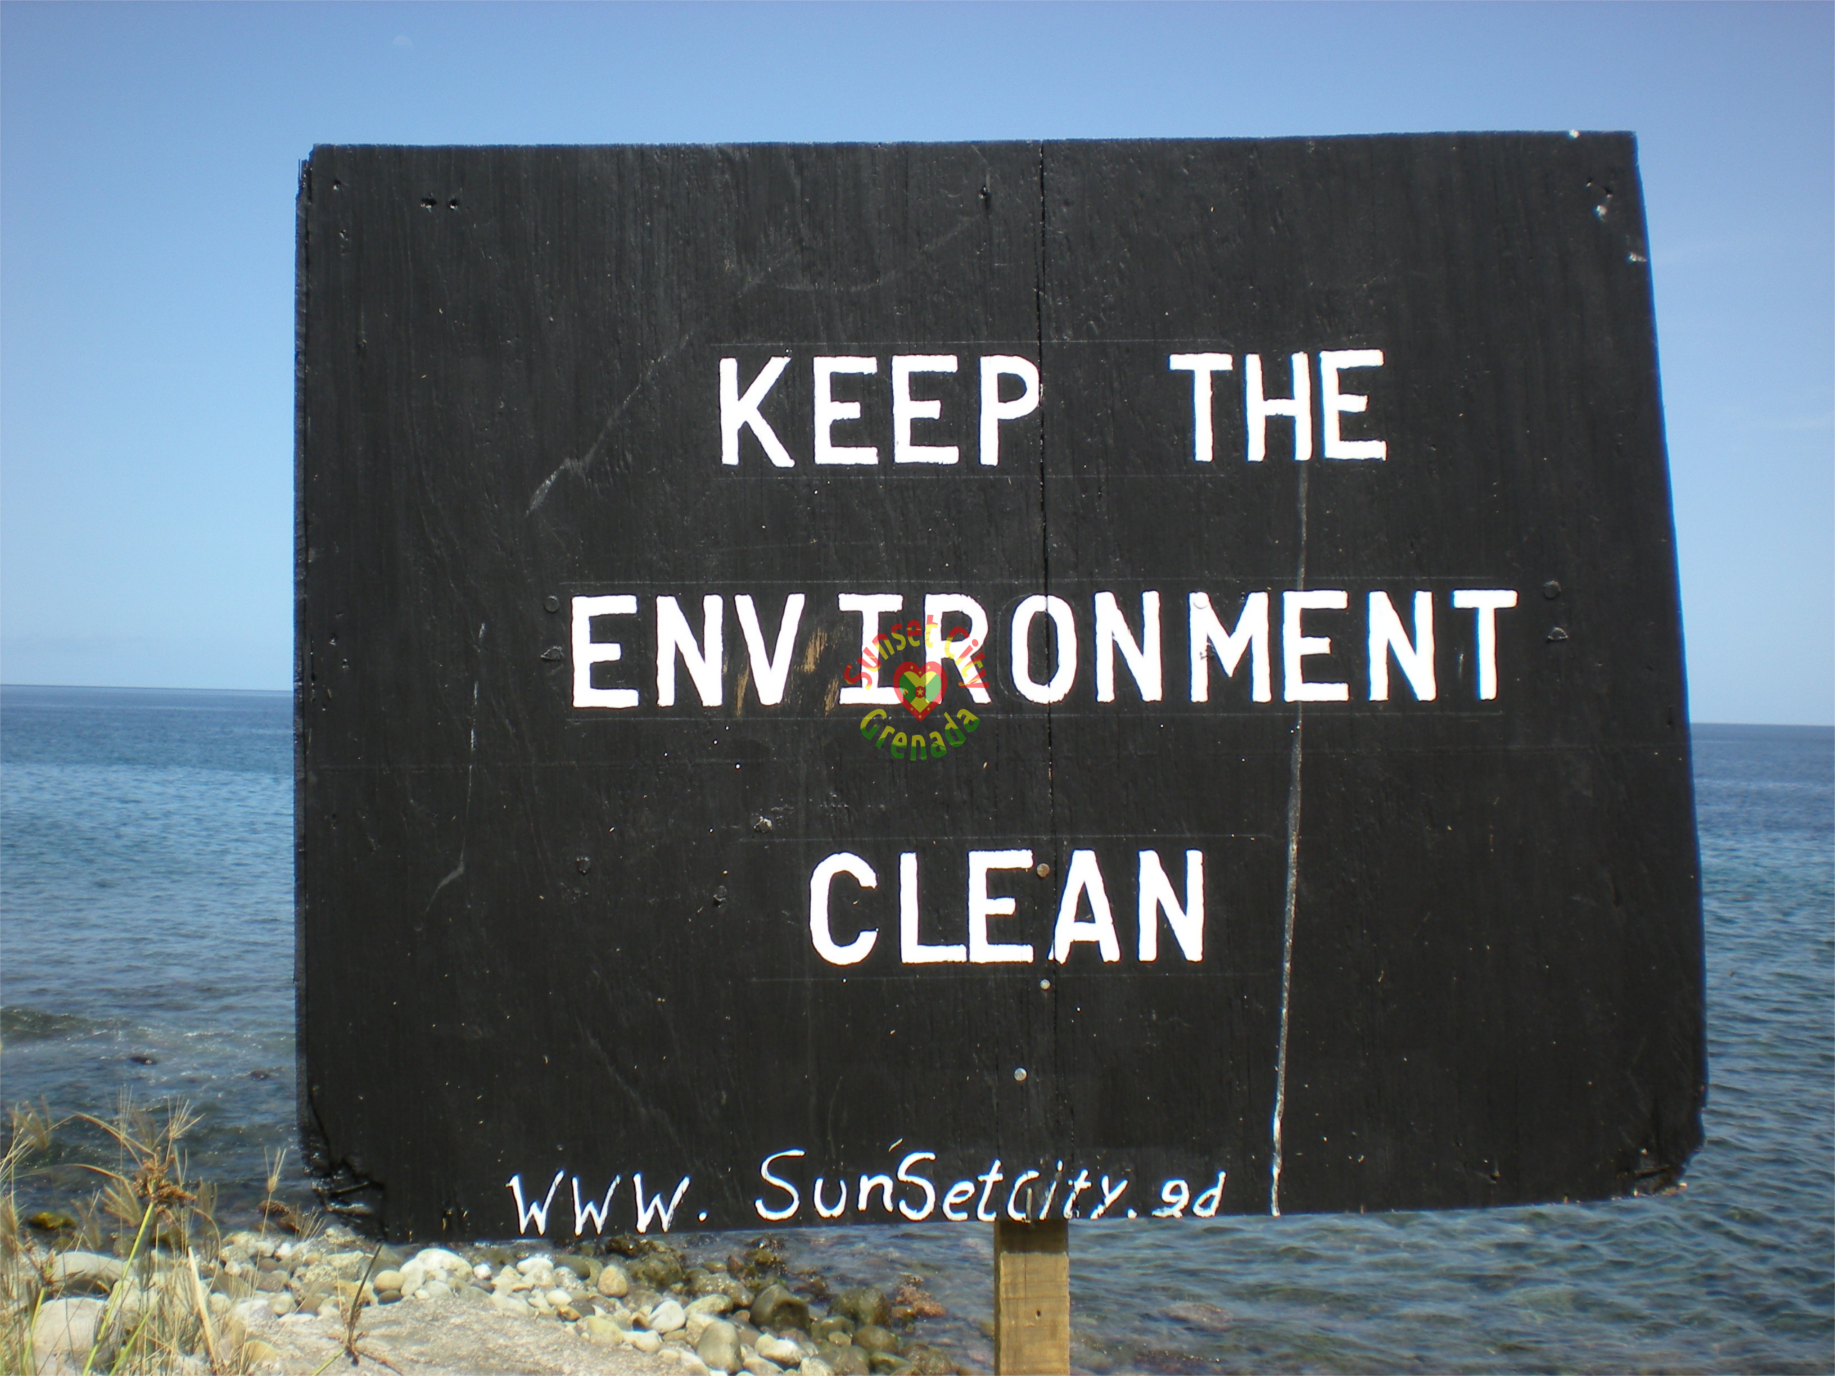 Keep The Environment Clean - sign sponsored by Sunset City Grenada